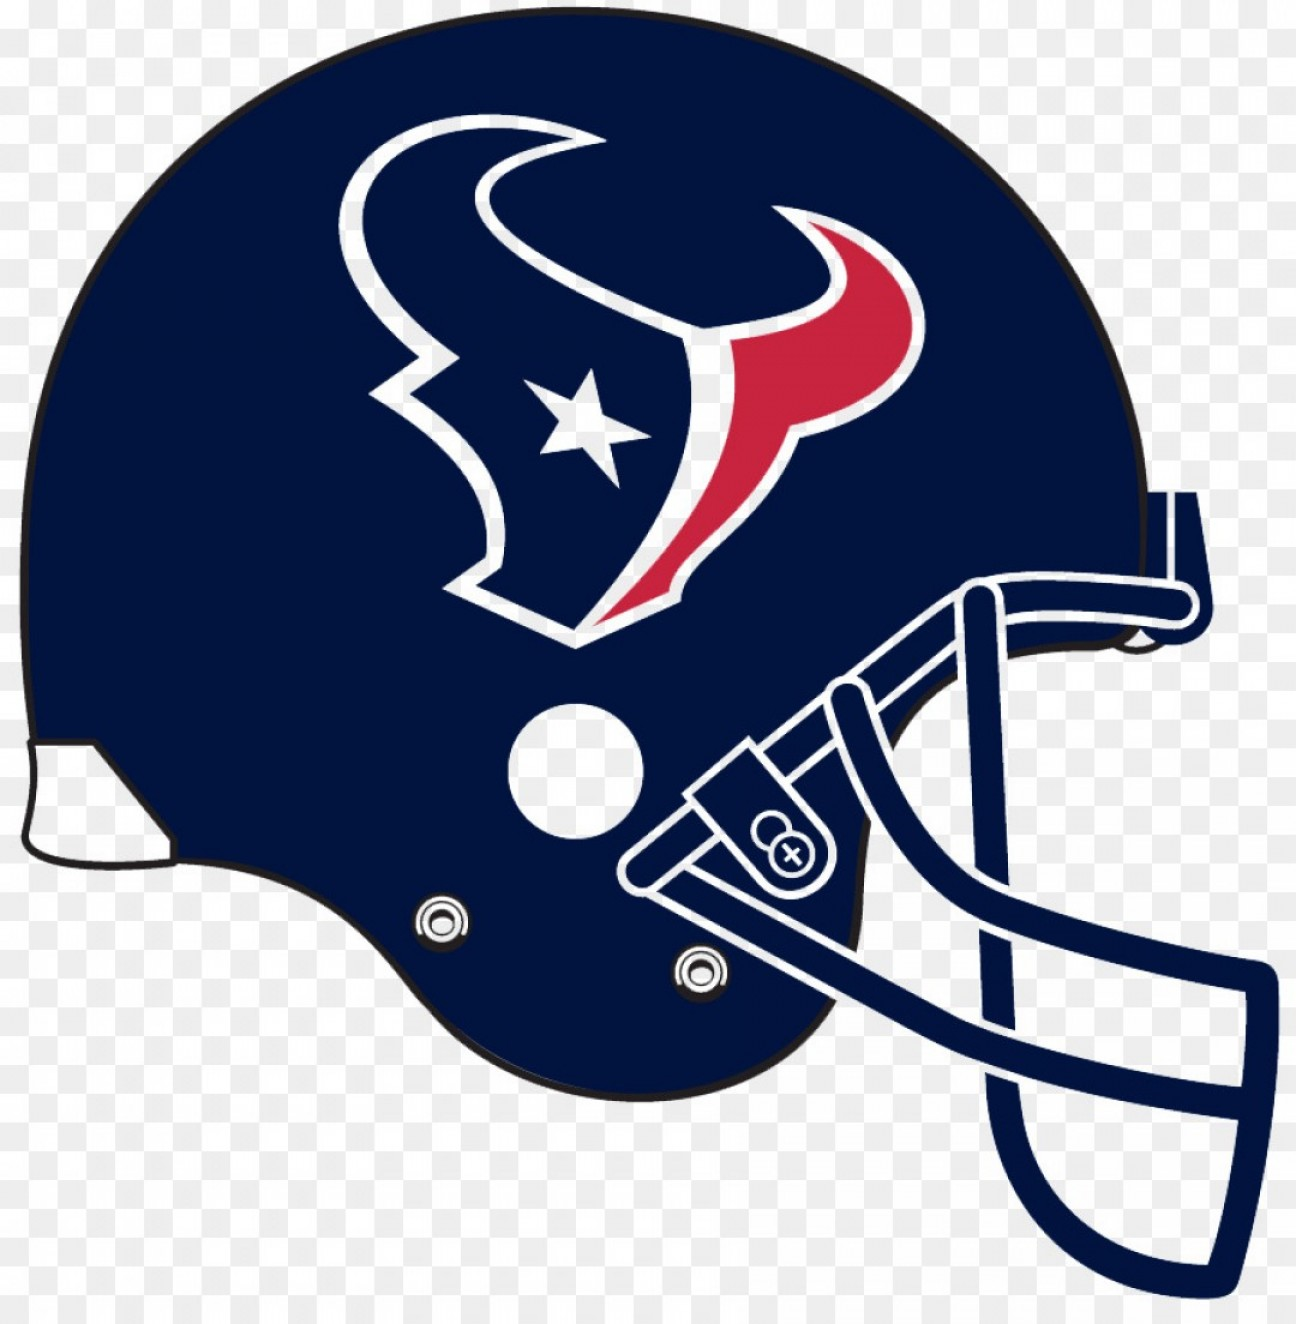 Png Houston Texans Nfl Atlanta Falcons Super Bowl Li B.